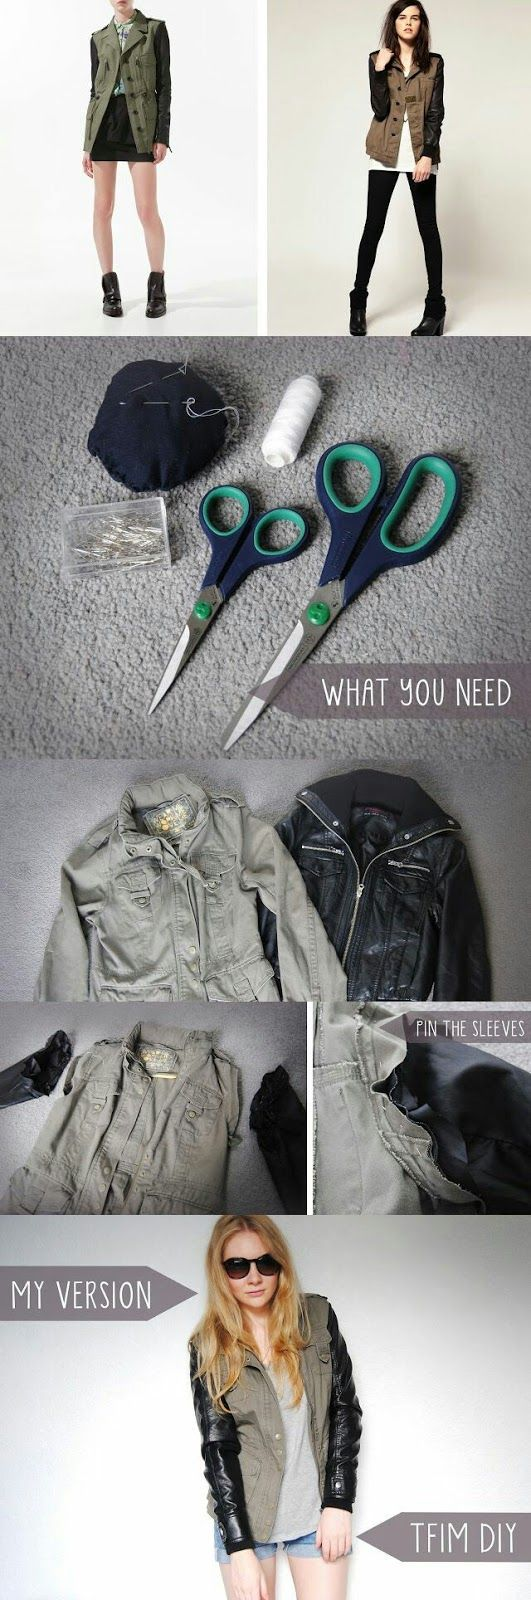 198 best fallwinter fashion diy images on pinterest winter leather sleeved parka gorgeous shirt fancy shirt 10 easy to make do it yourself ideas solutioingenieria Images